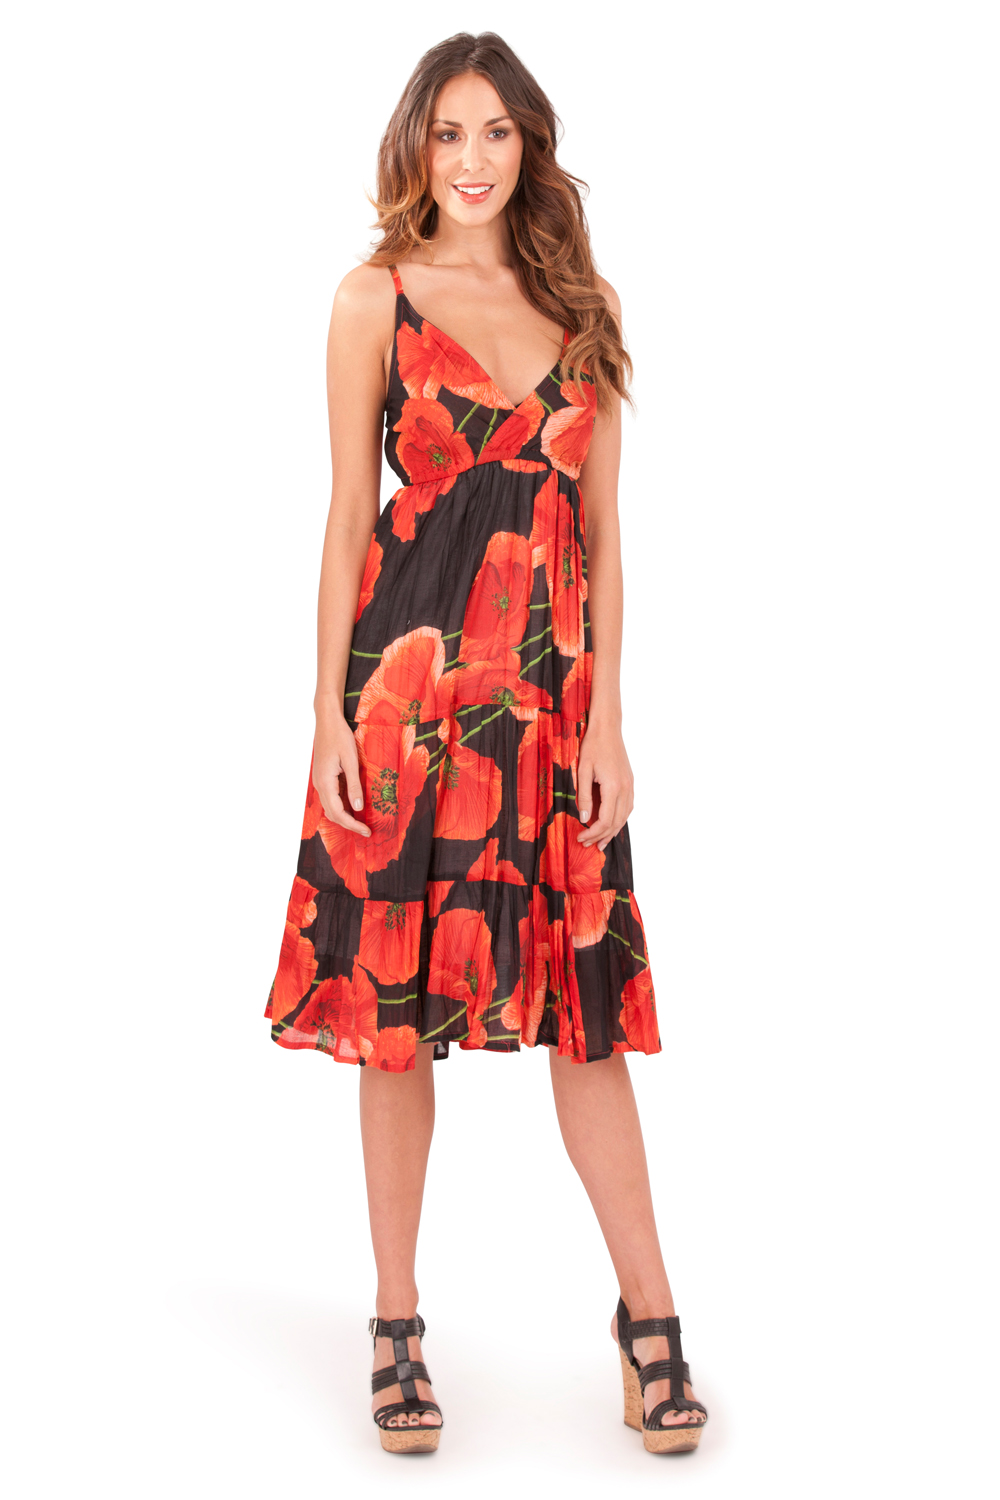 Pistachio-Womens-Crossover-Poppy-Knee-Length-Cotton-Midi-Summer-Evening-Dress thumbnail 3